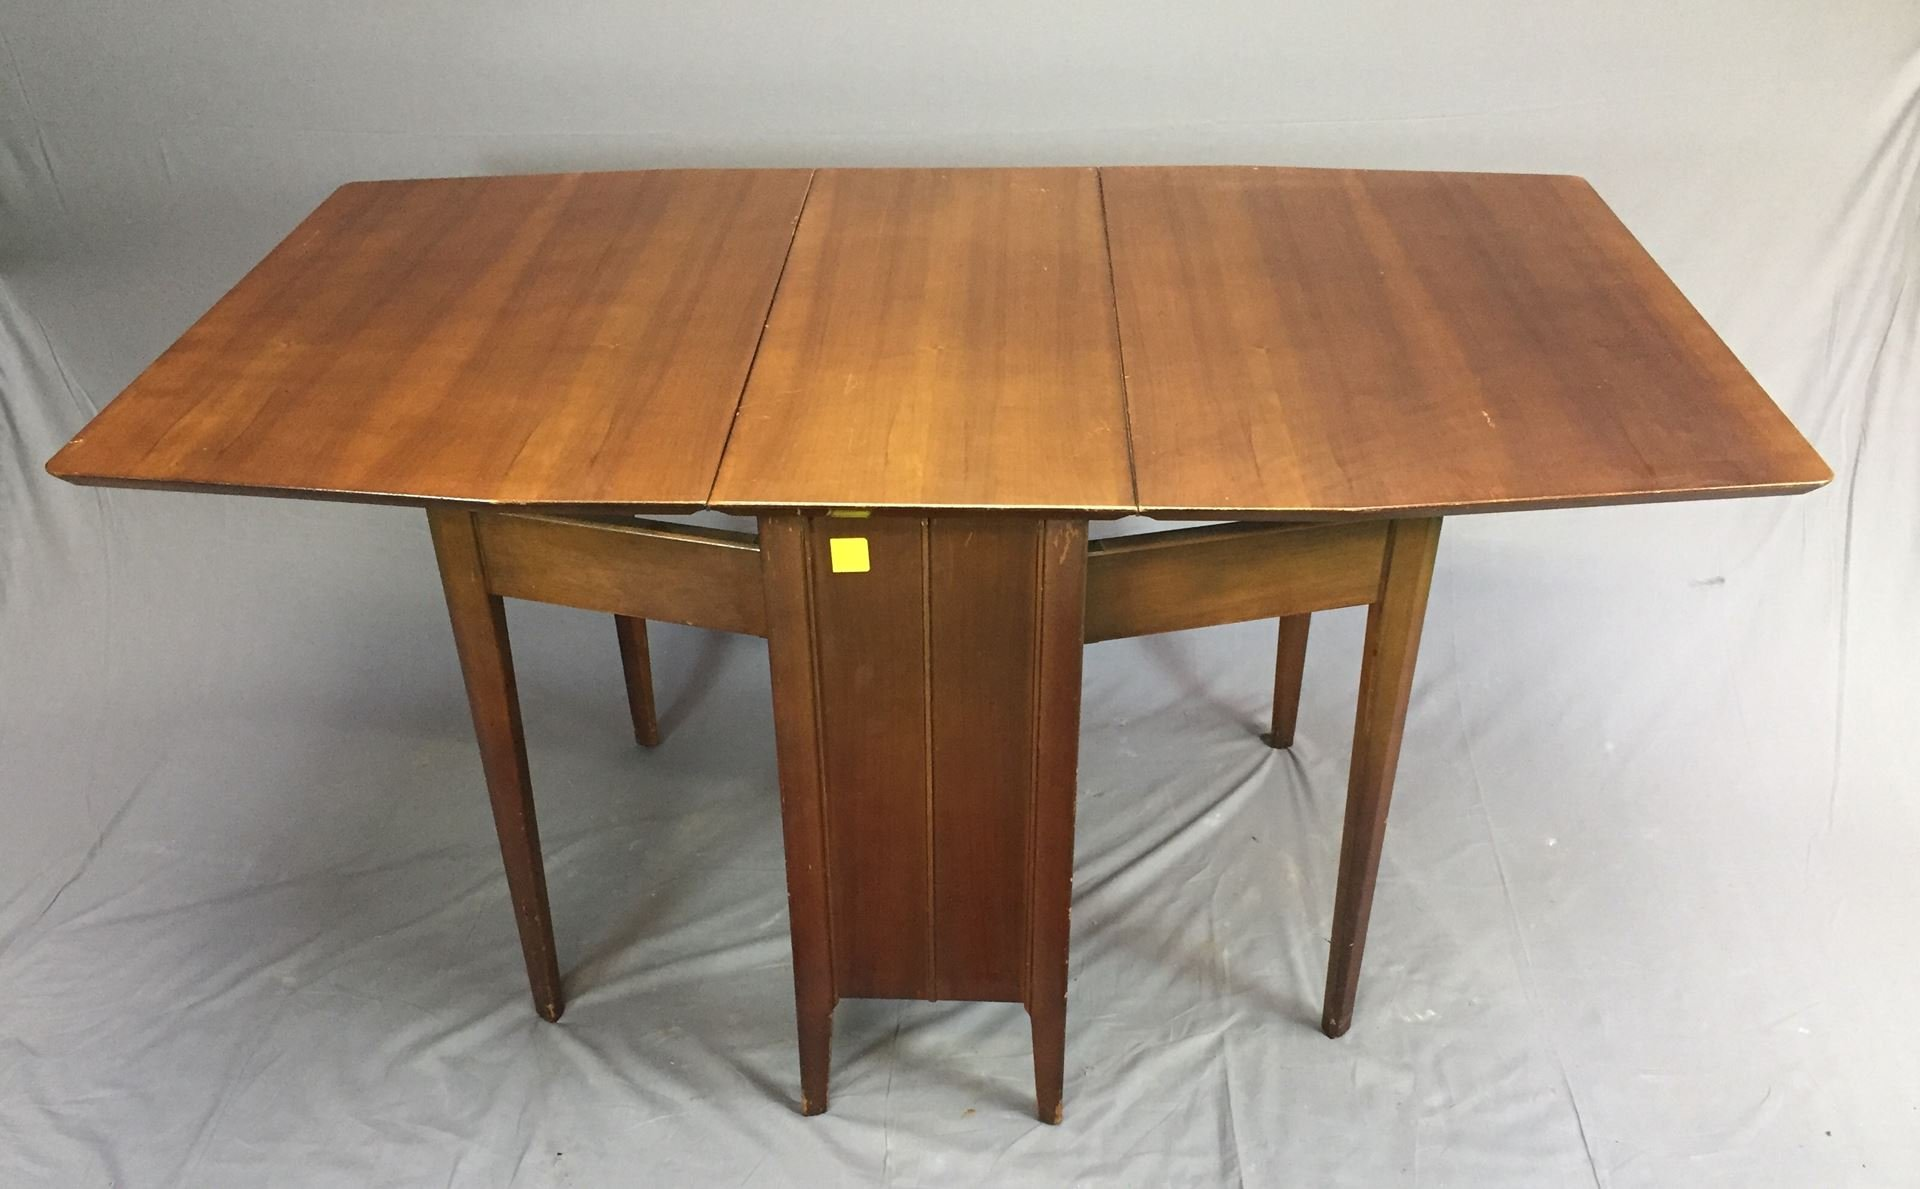 Gateleg Table In Walnut, 1970s